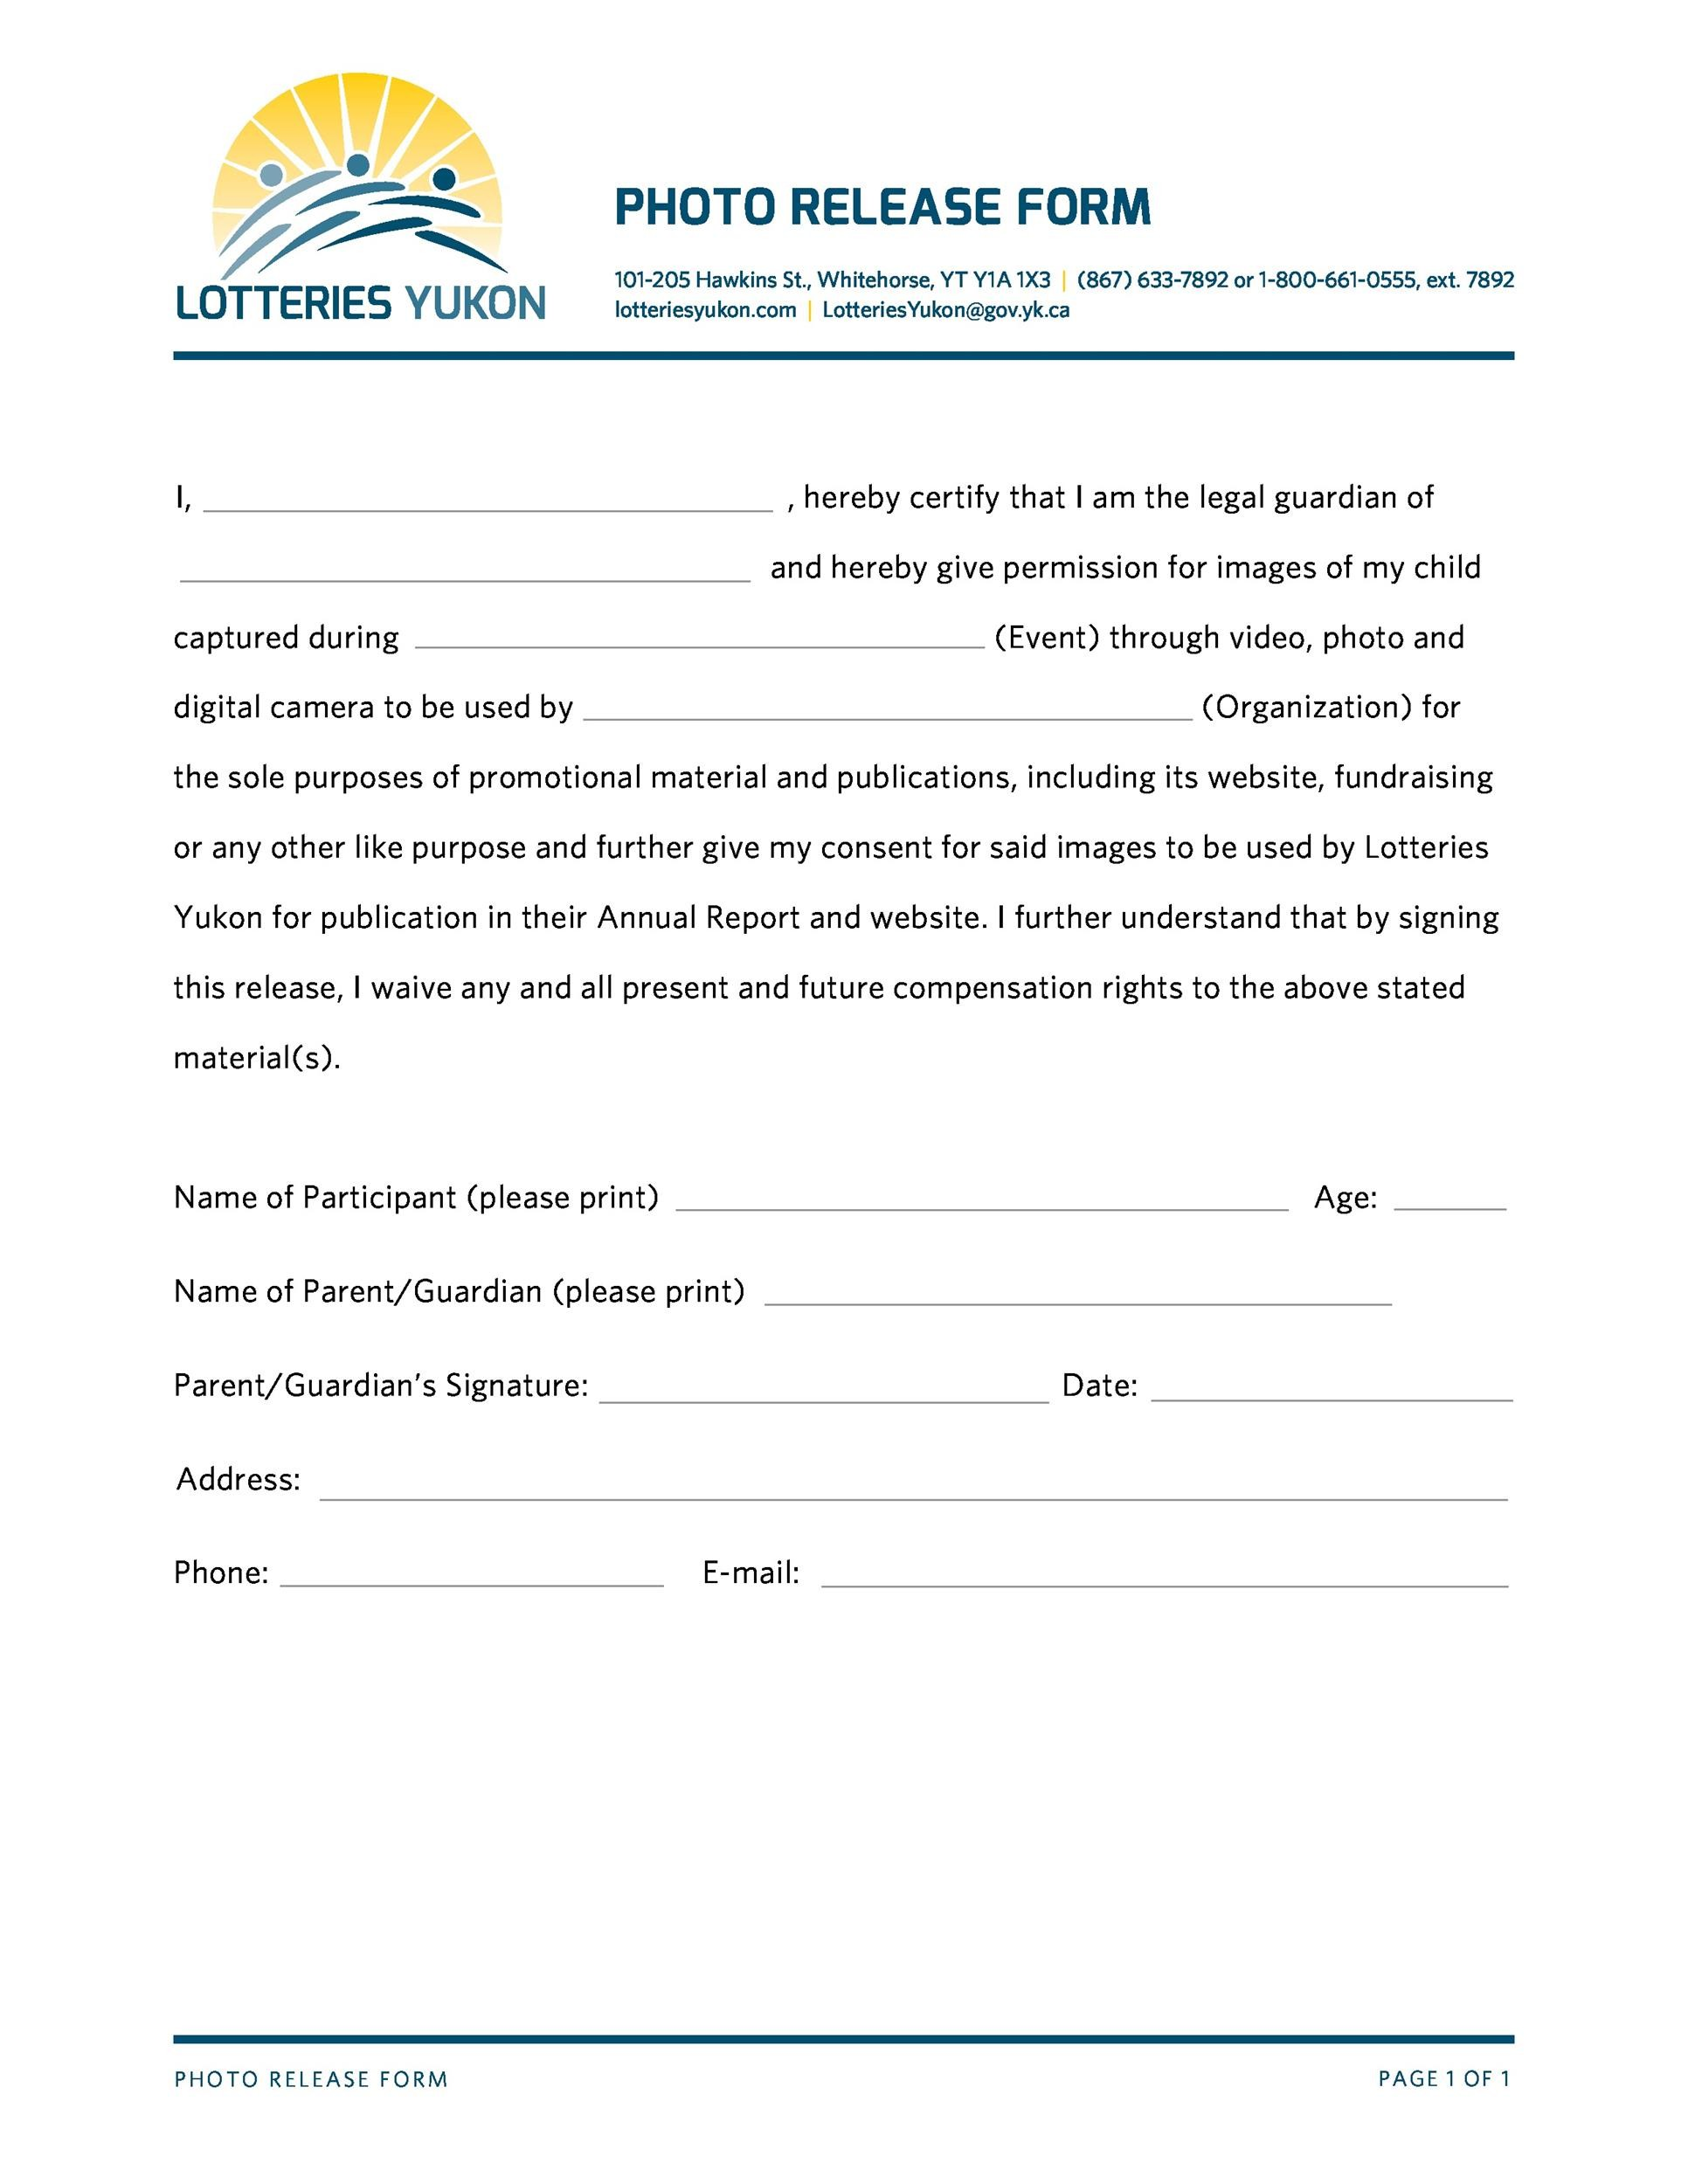 Printable Photo Release Form 21